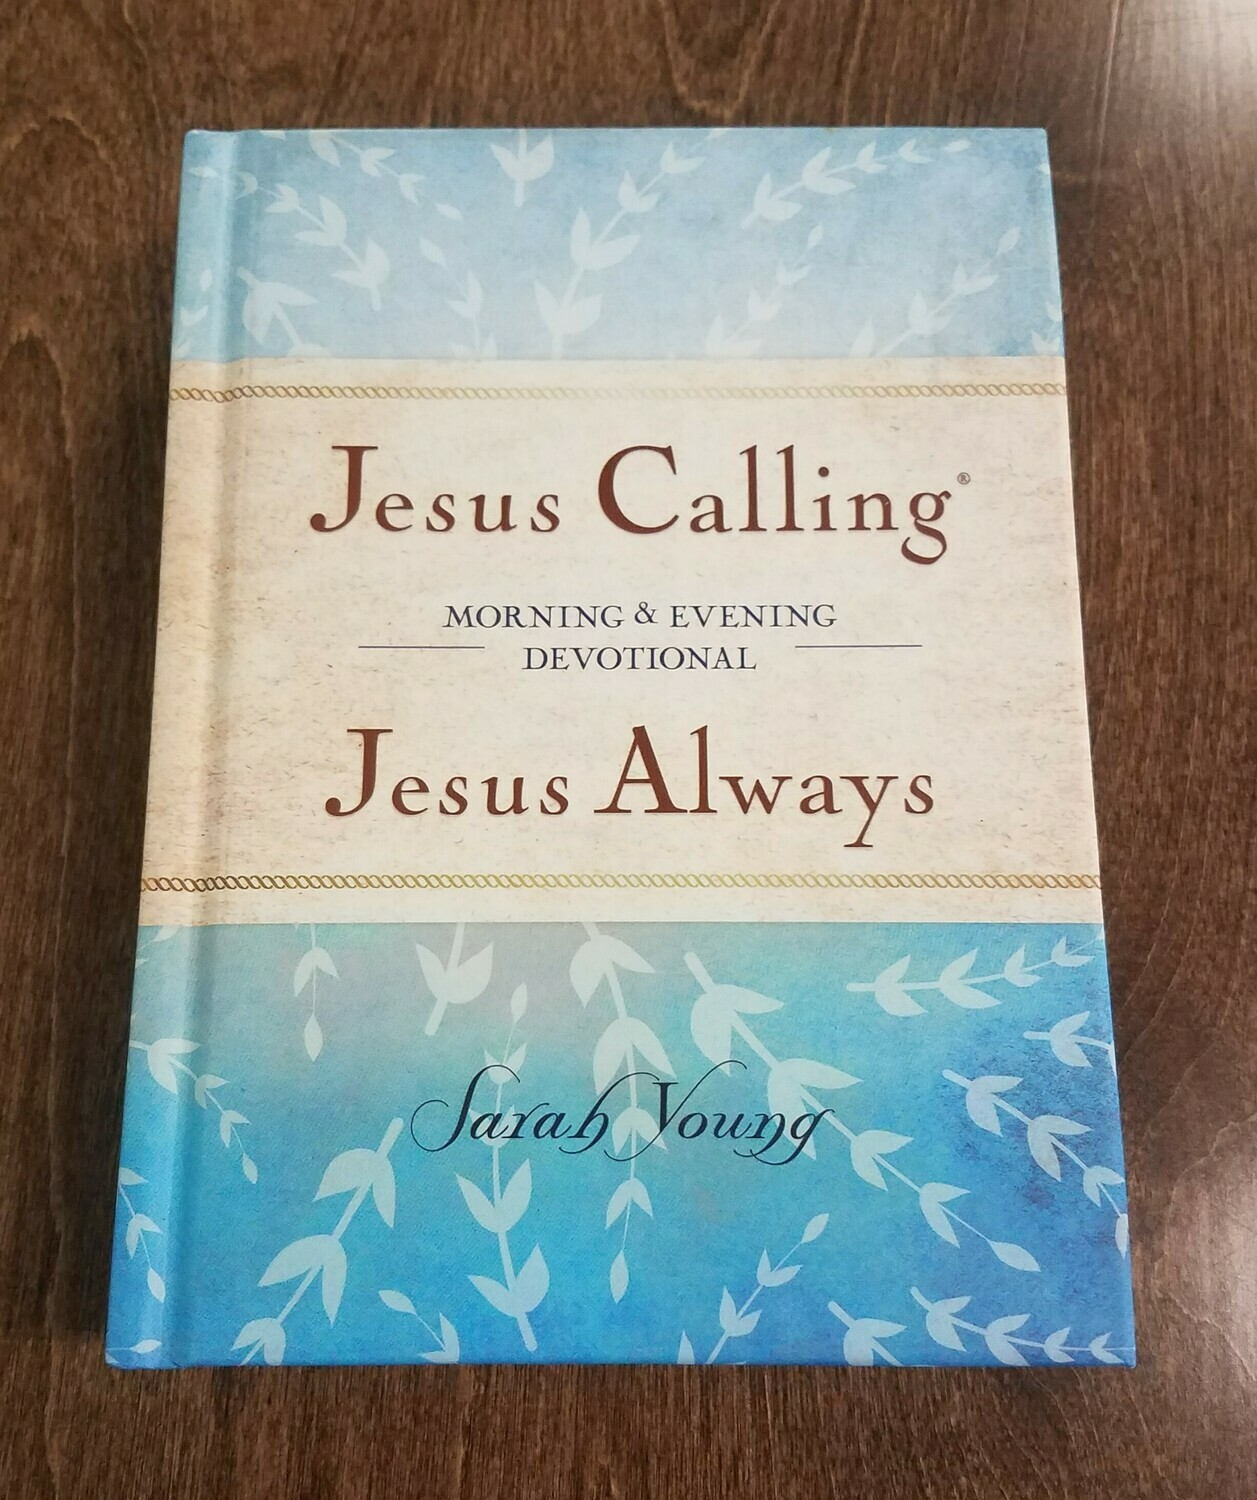 Jesus Calling - Jesus Always: Morning and Evening Devotional by Sarah Young